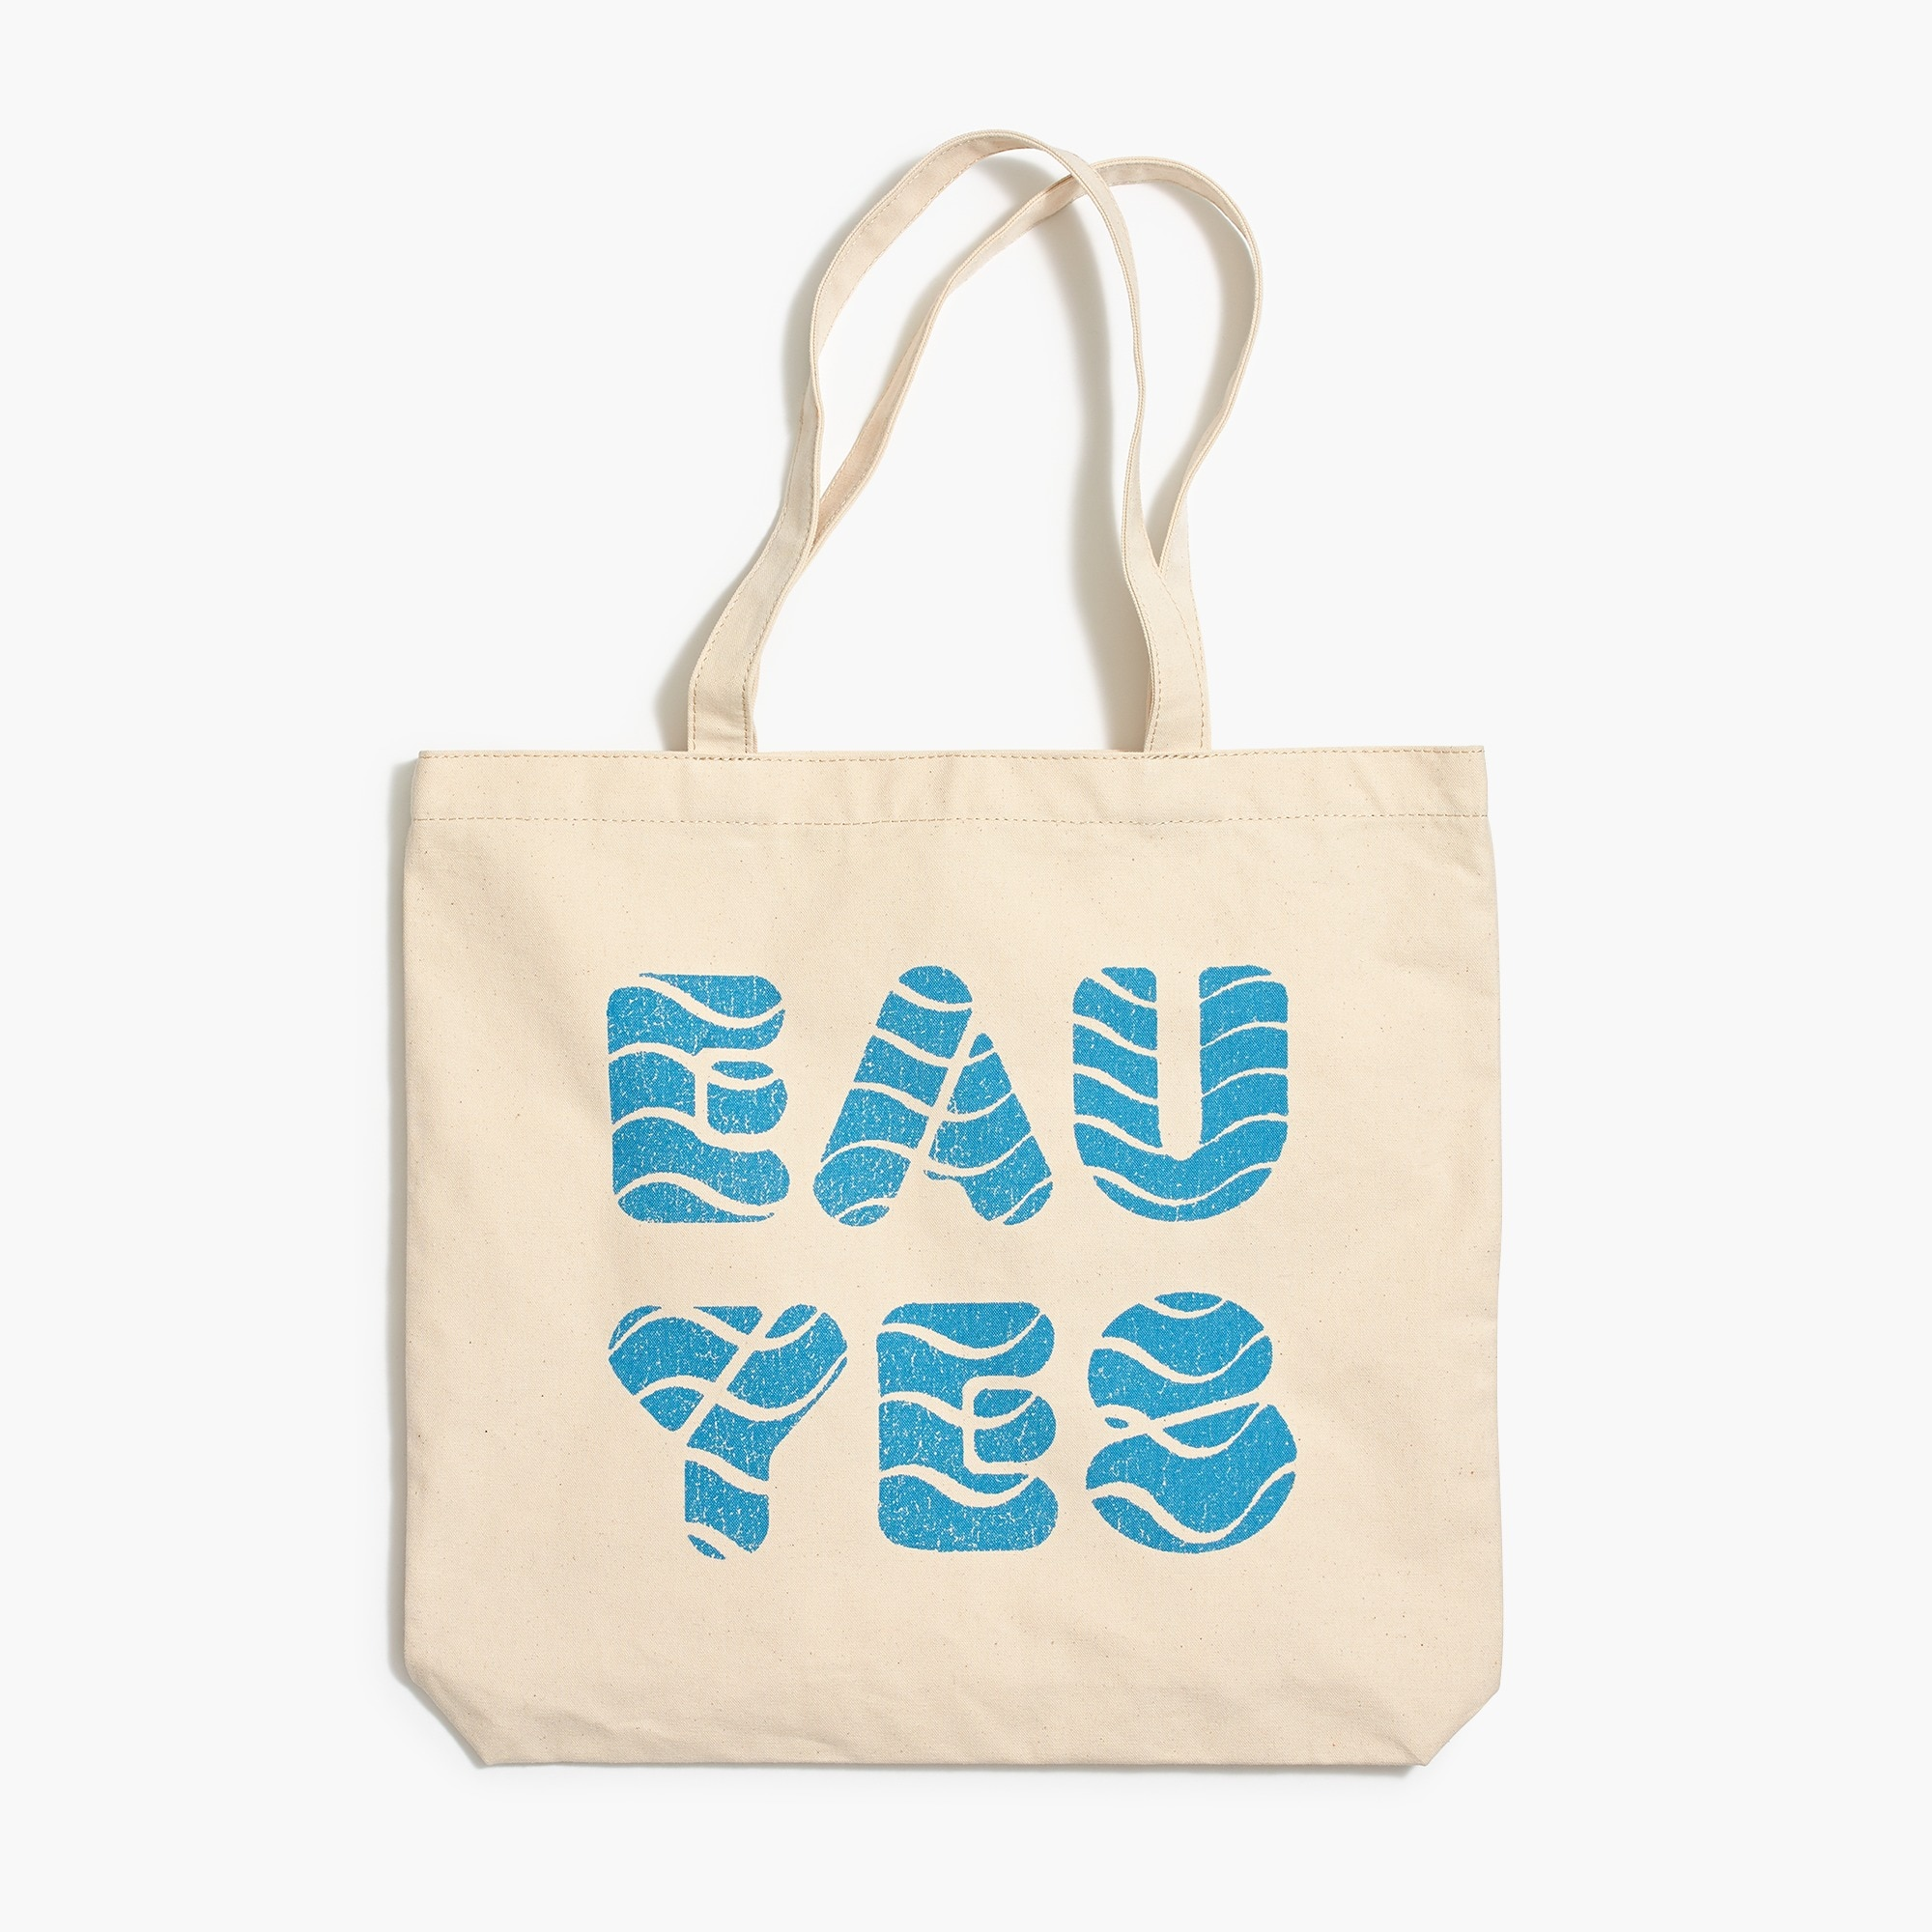 "j.crew x charity: water ""eau yes"" canvas tote bag : factorywomen home & gifts"